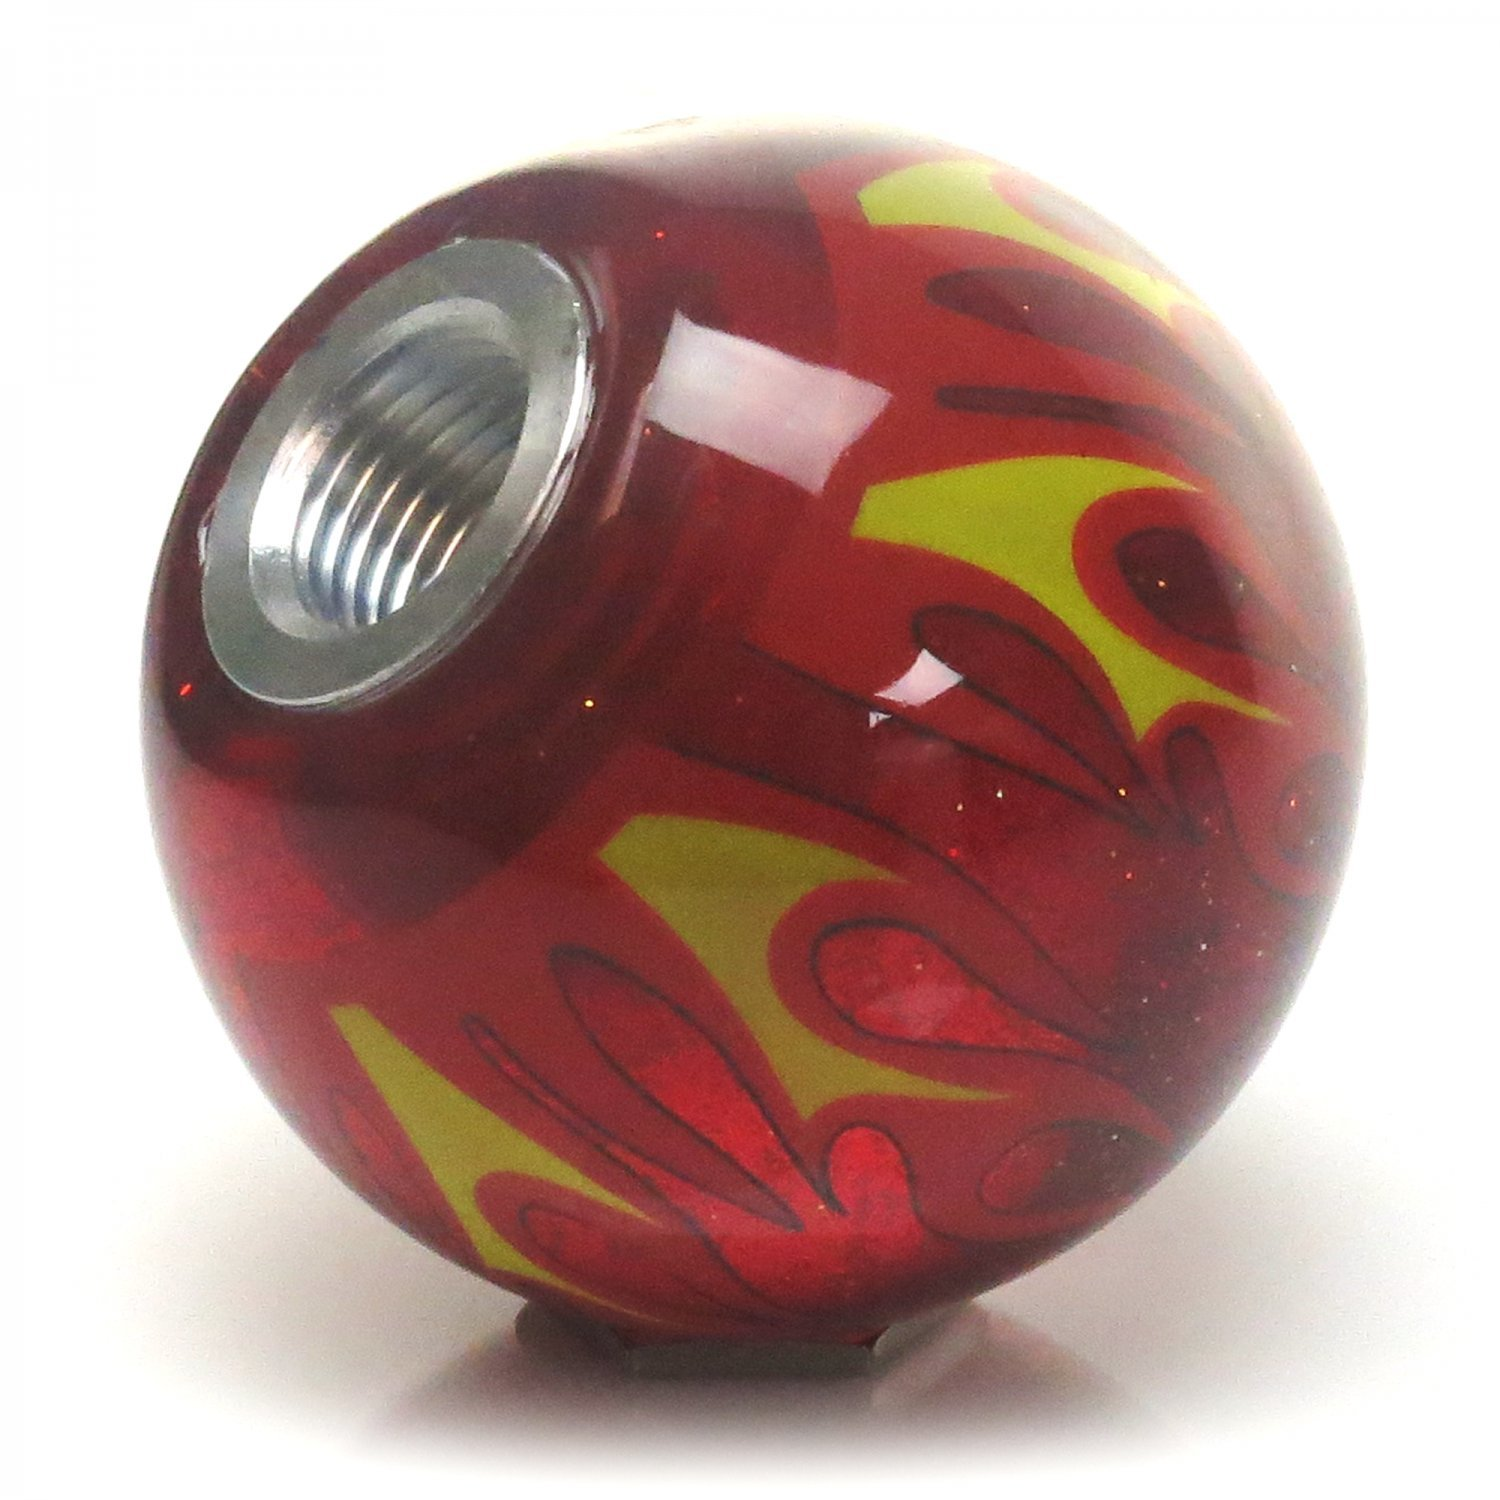 Blue 6 Speed Shift Pattern - Gas 26 Red Flame Metal Flake American Shifter 297243 Shift Knob